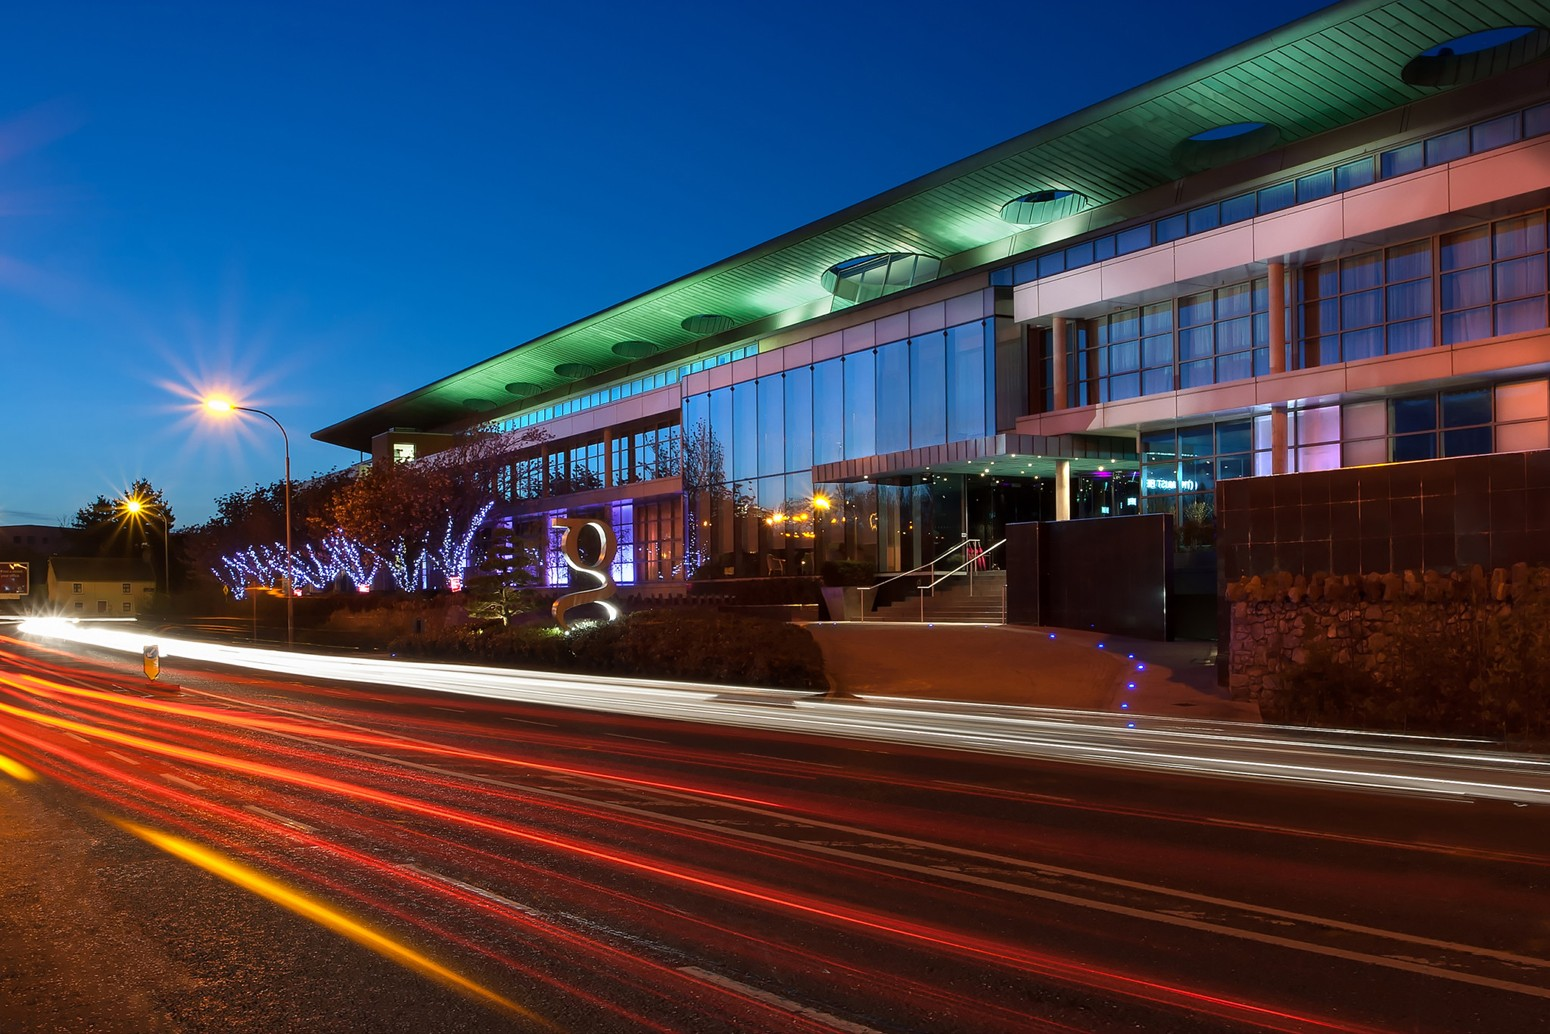 The 5-Star g hotel Galway City by Kelvin Gillmor